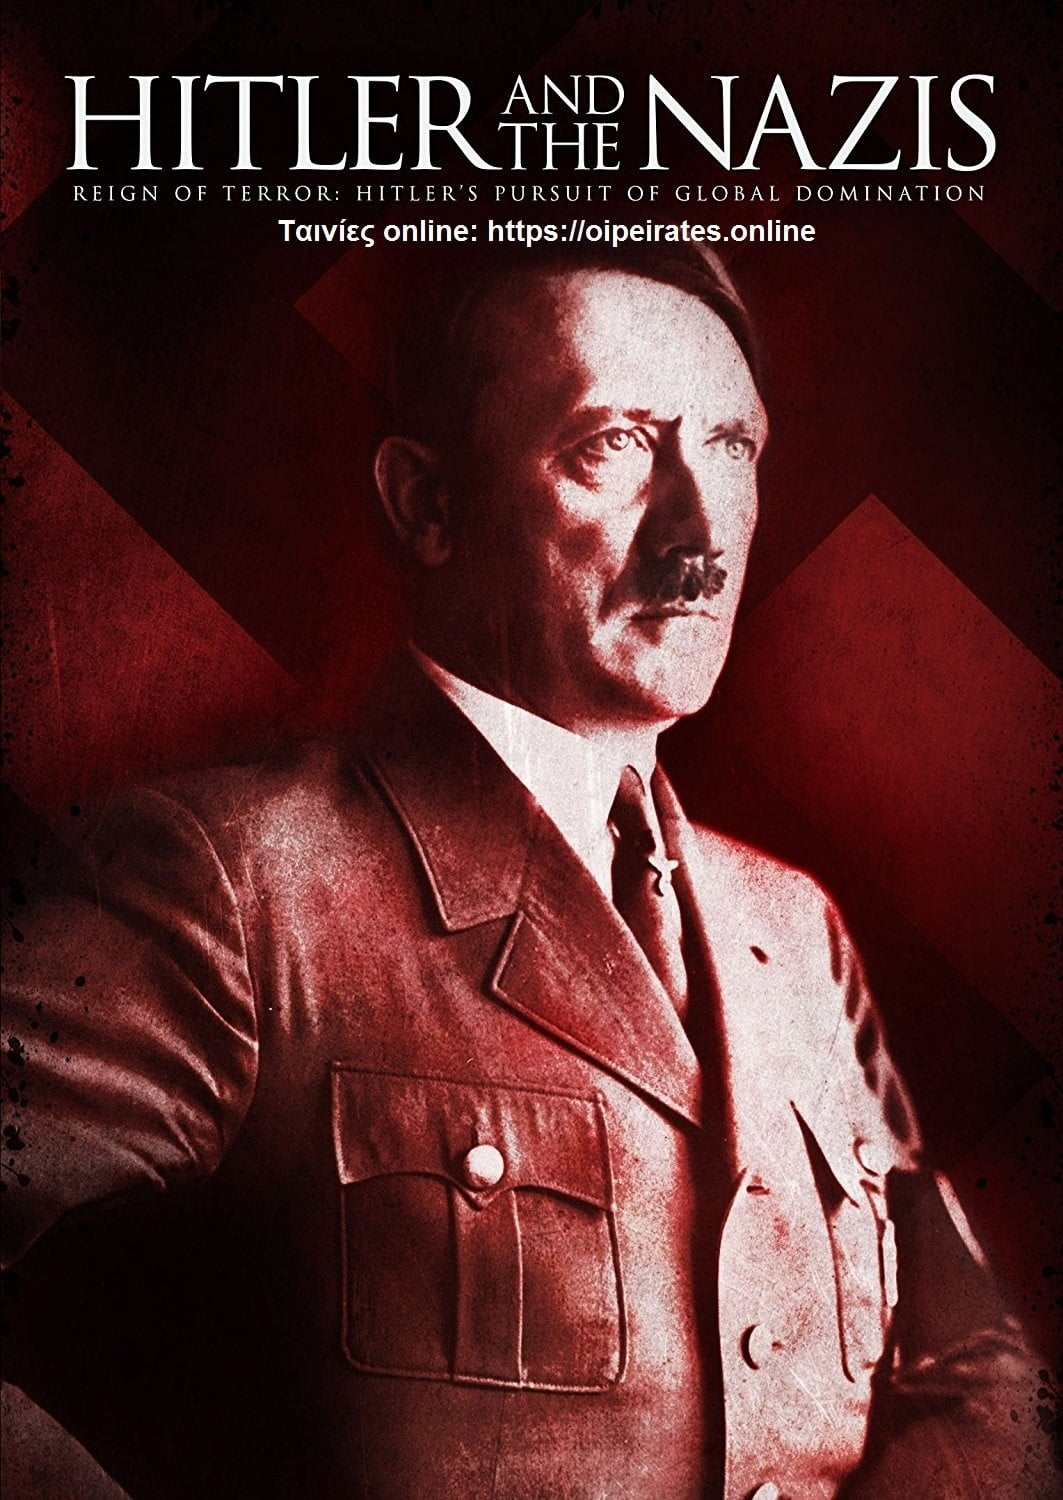 Hitler and the Nazis (1970)